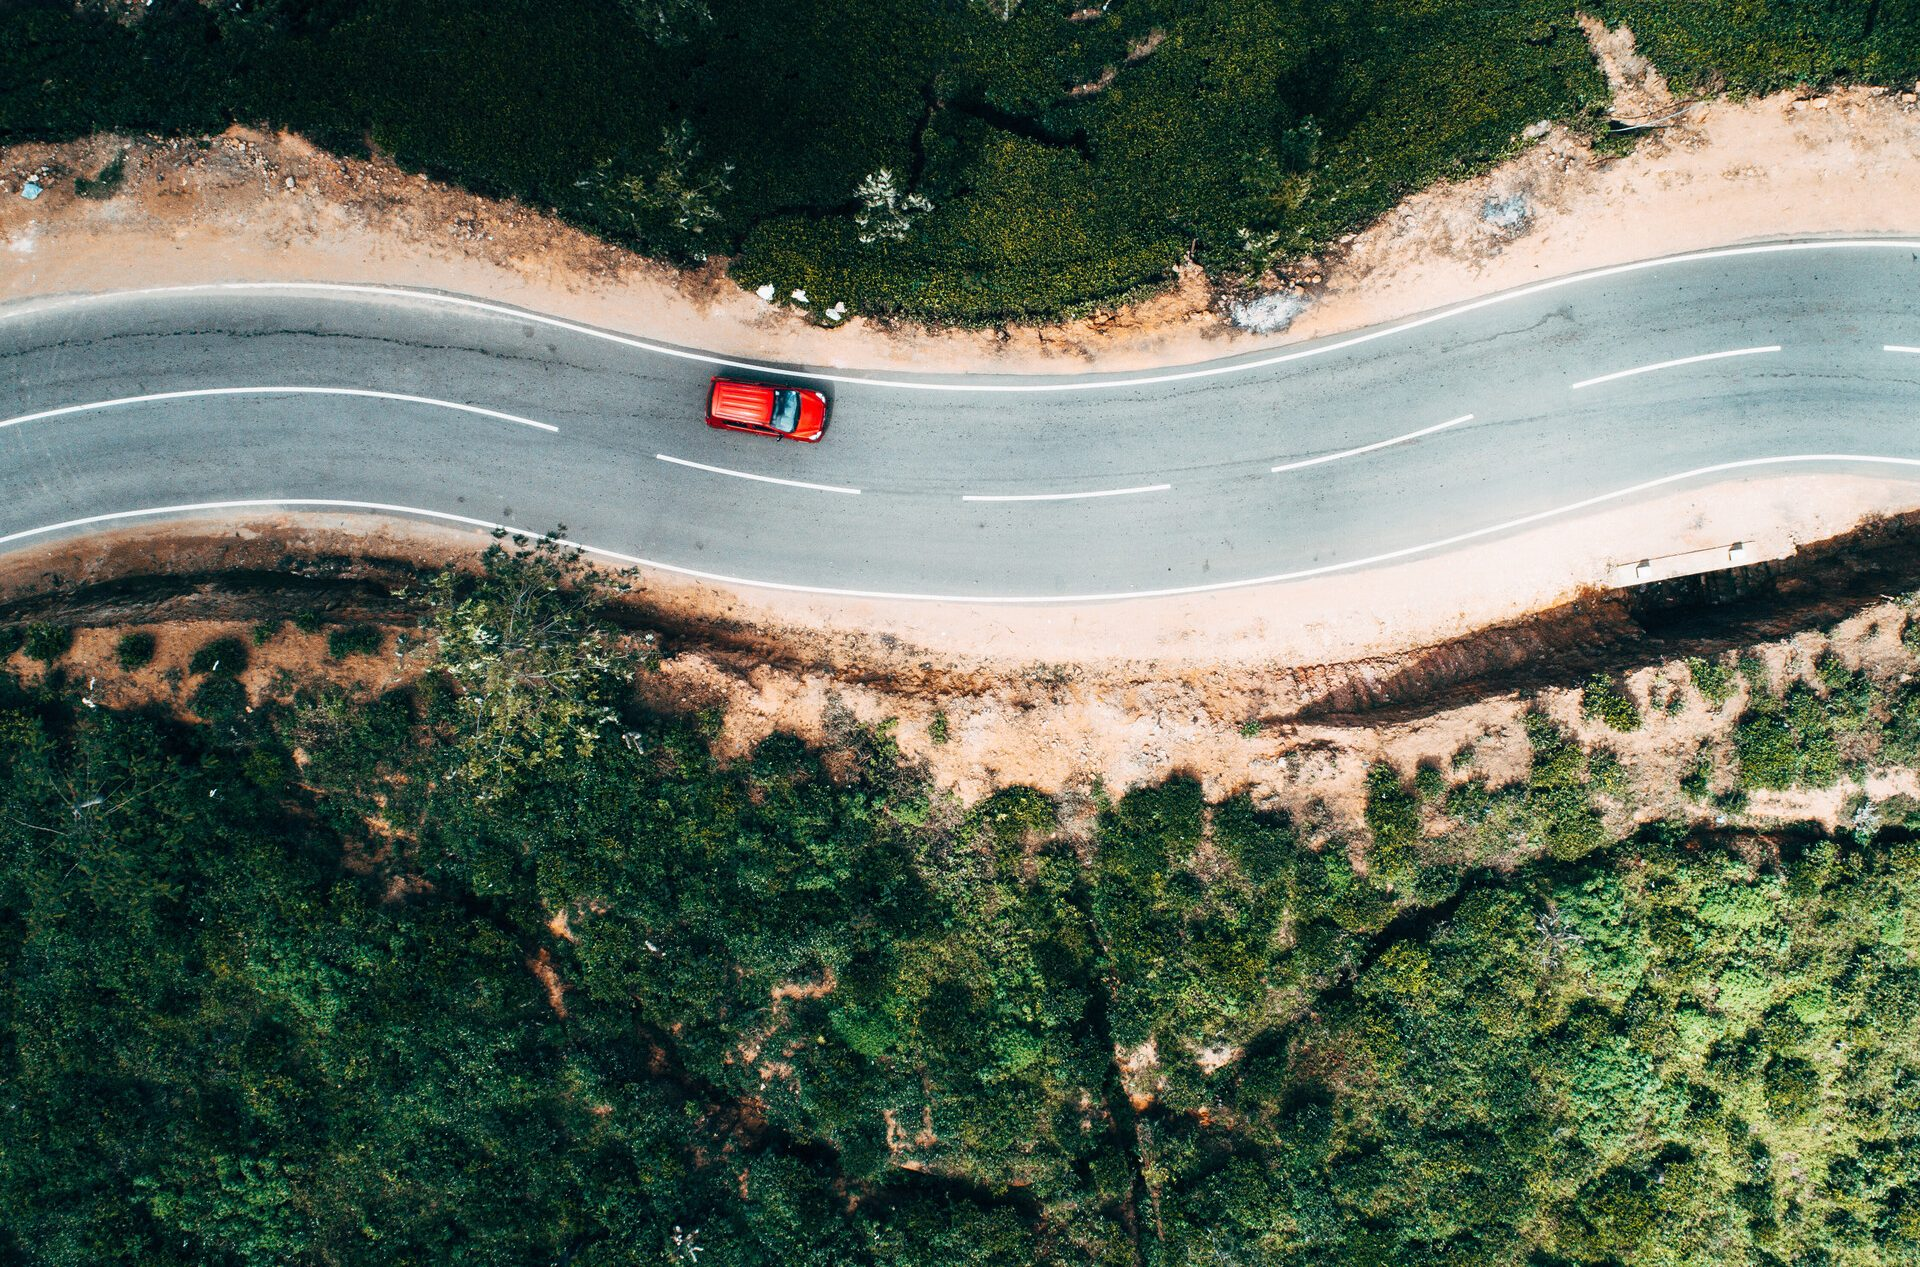 Aerial view of the car on a picturesque road.